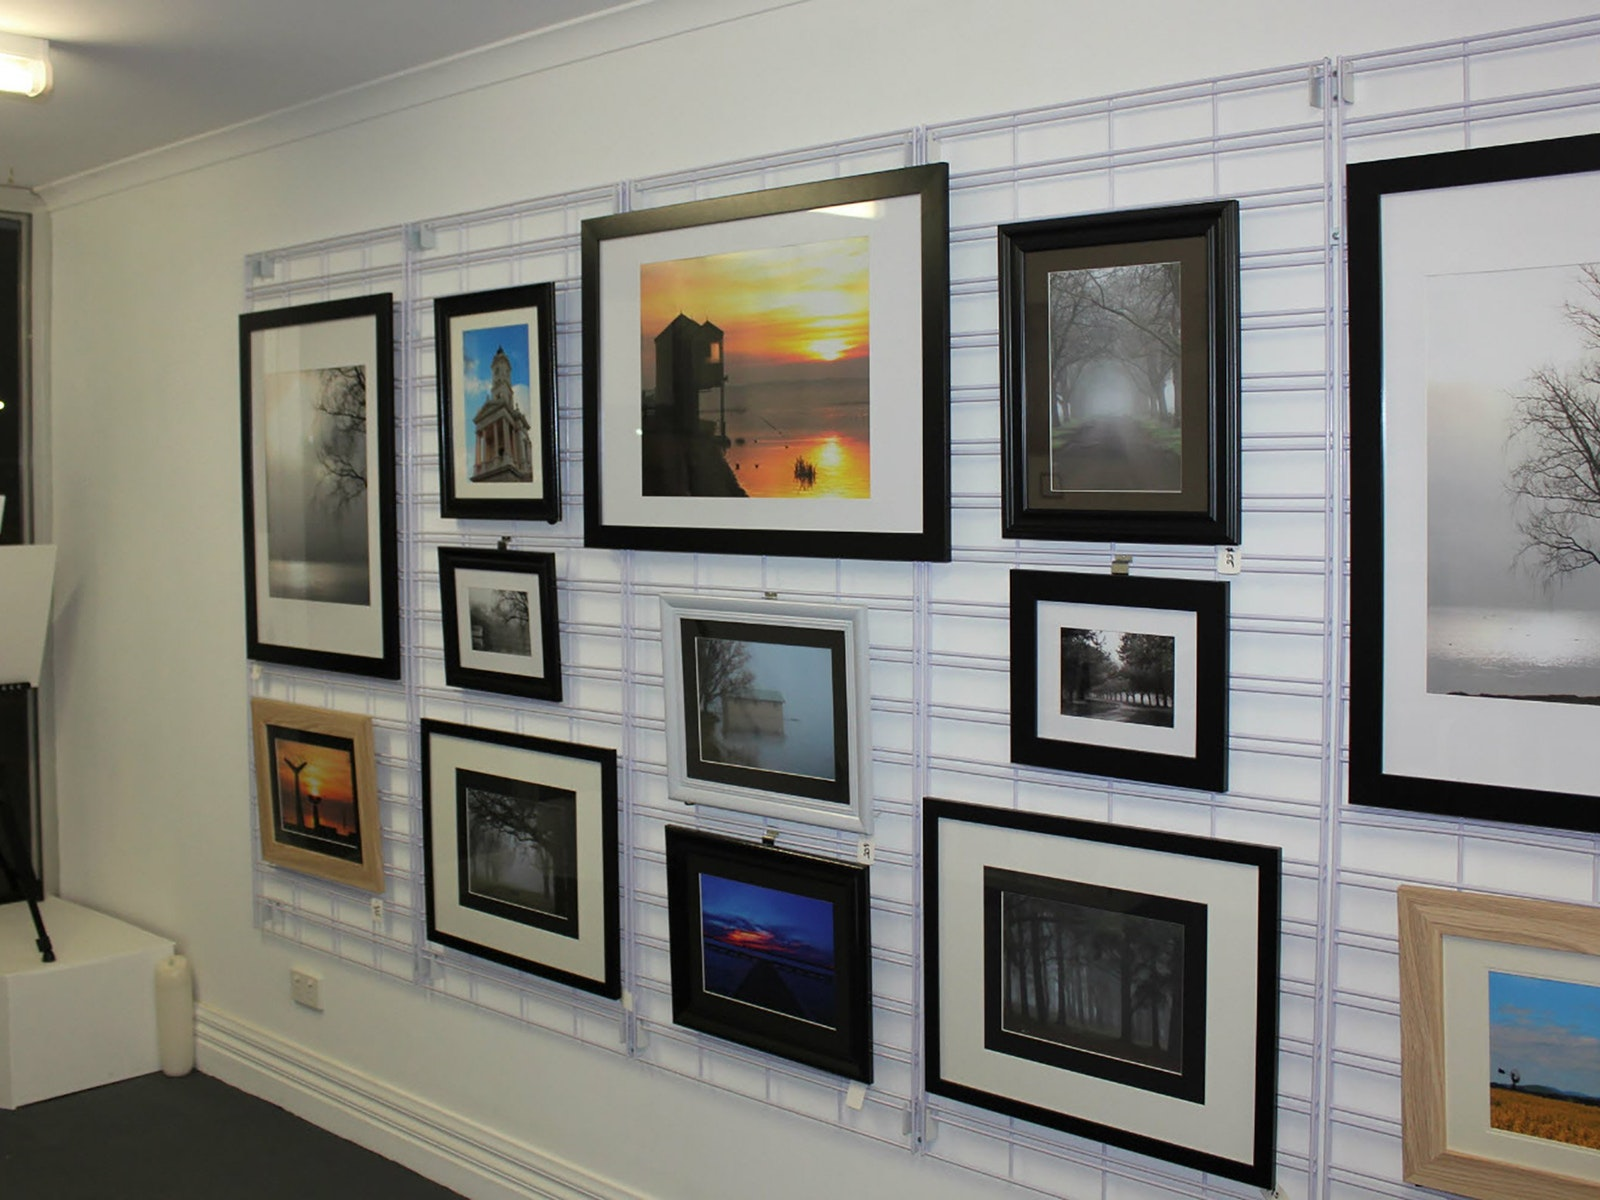 Ballart Image Gallery and The Ballarat Shop